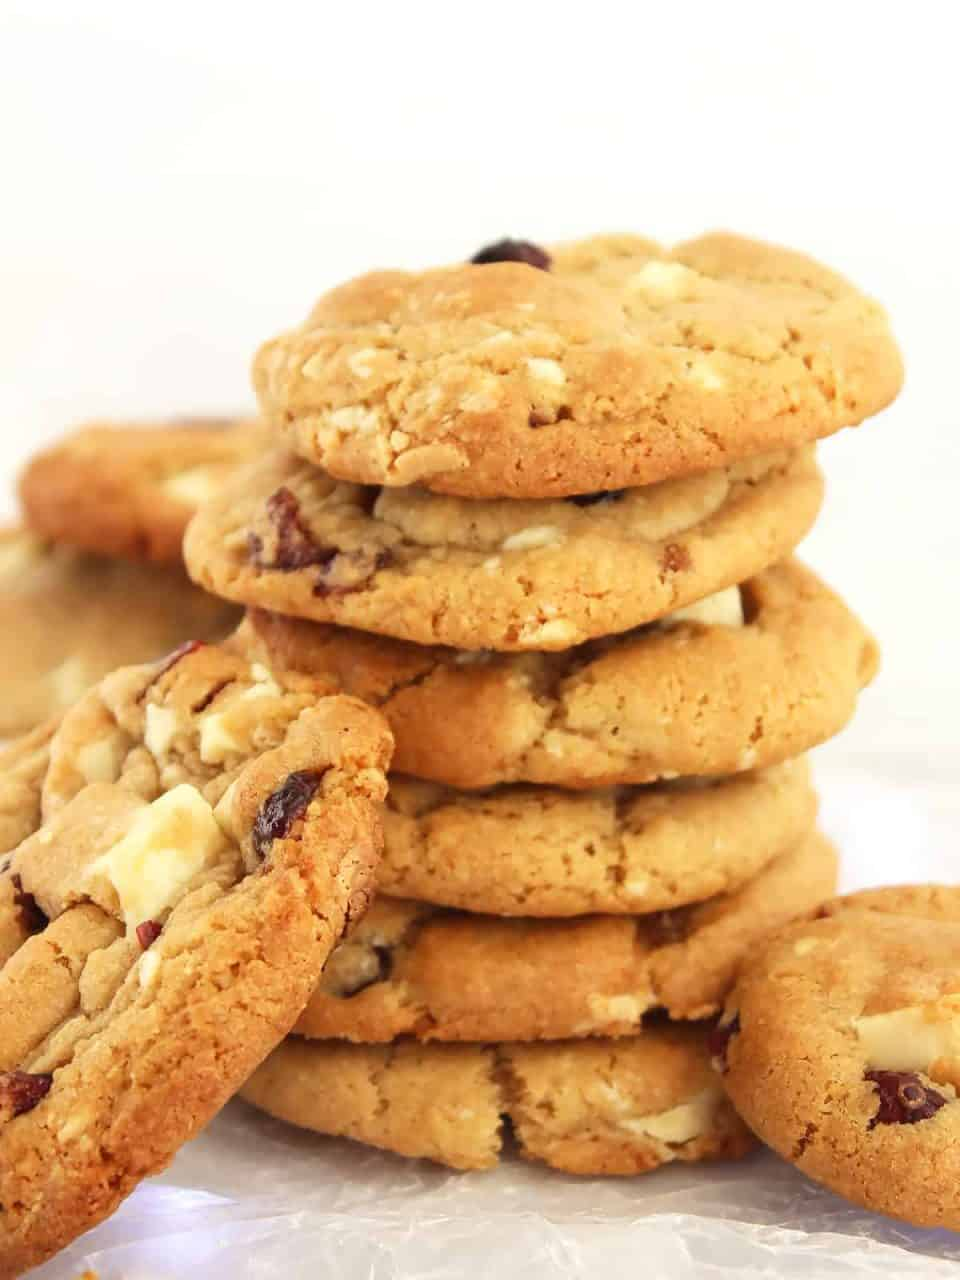 A stack of cookies with white chocolate chunks and cranberries.